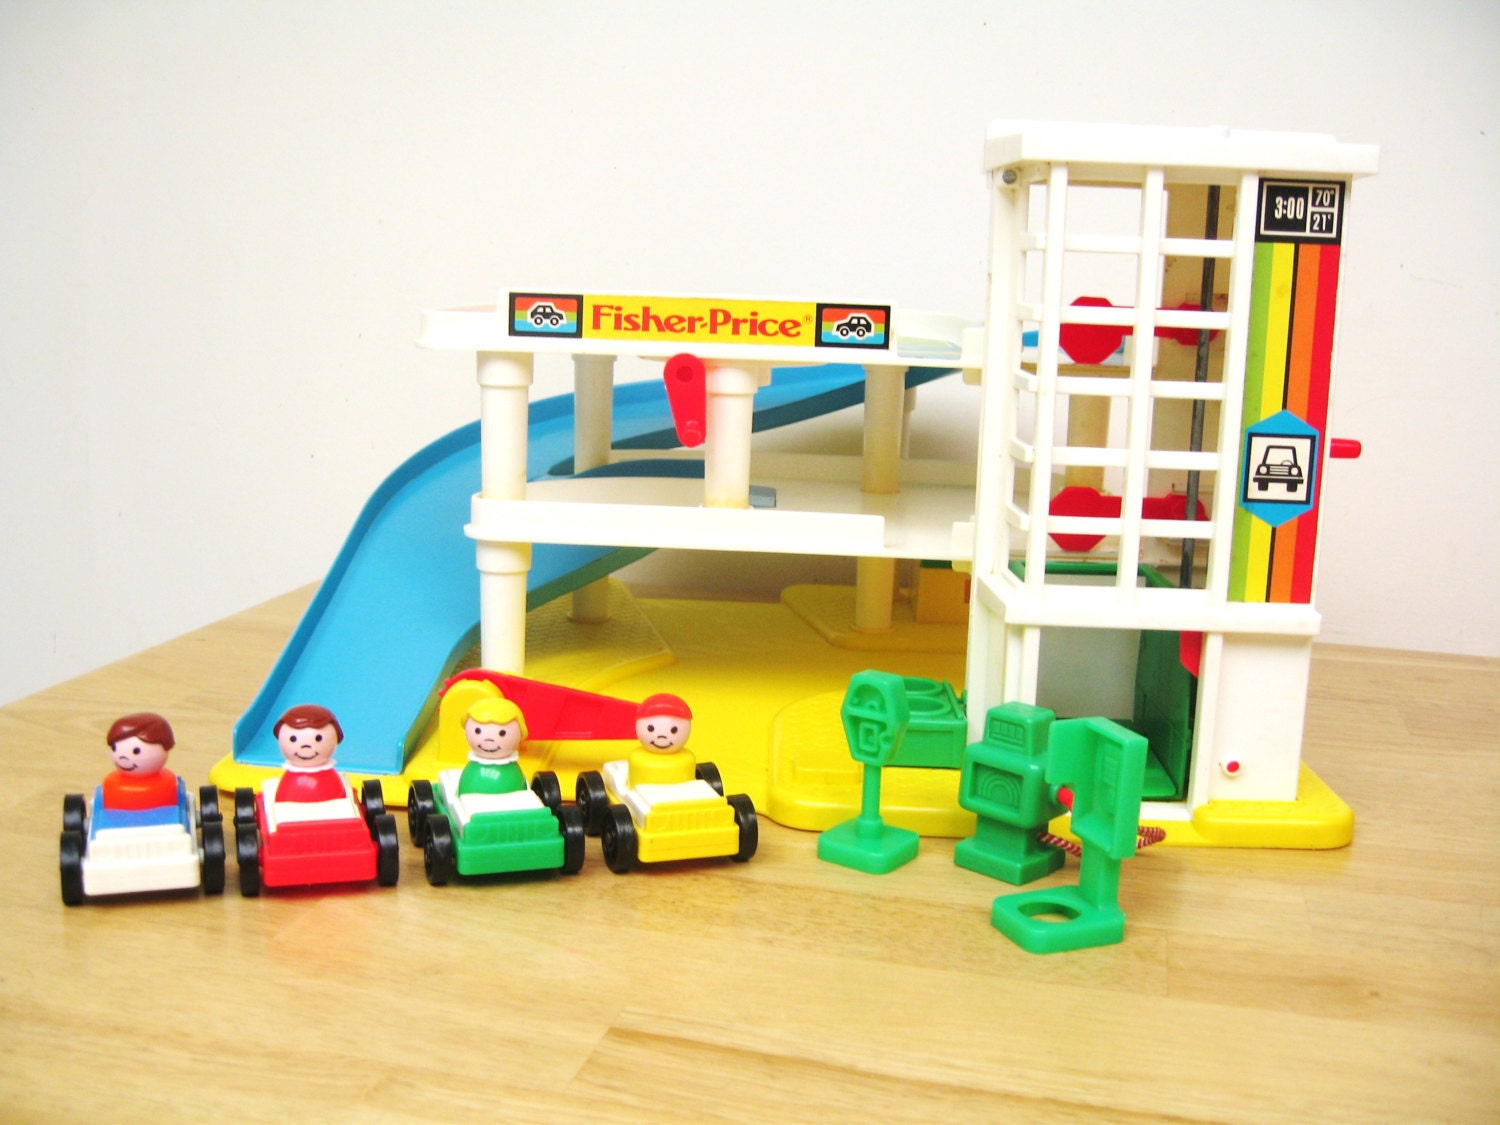 vintage fisher price garage playset by toysofthepast on etsy. Black Bedroom Furniture Sets. Home Design Ideas